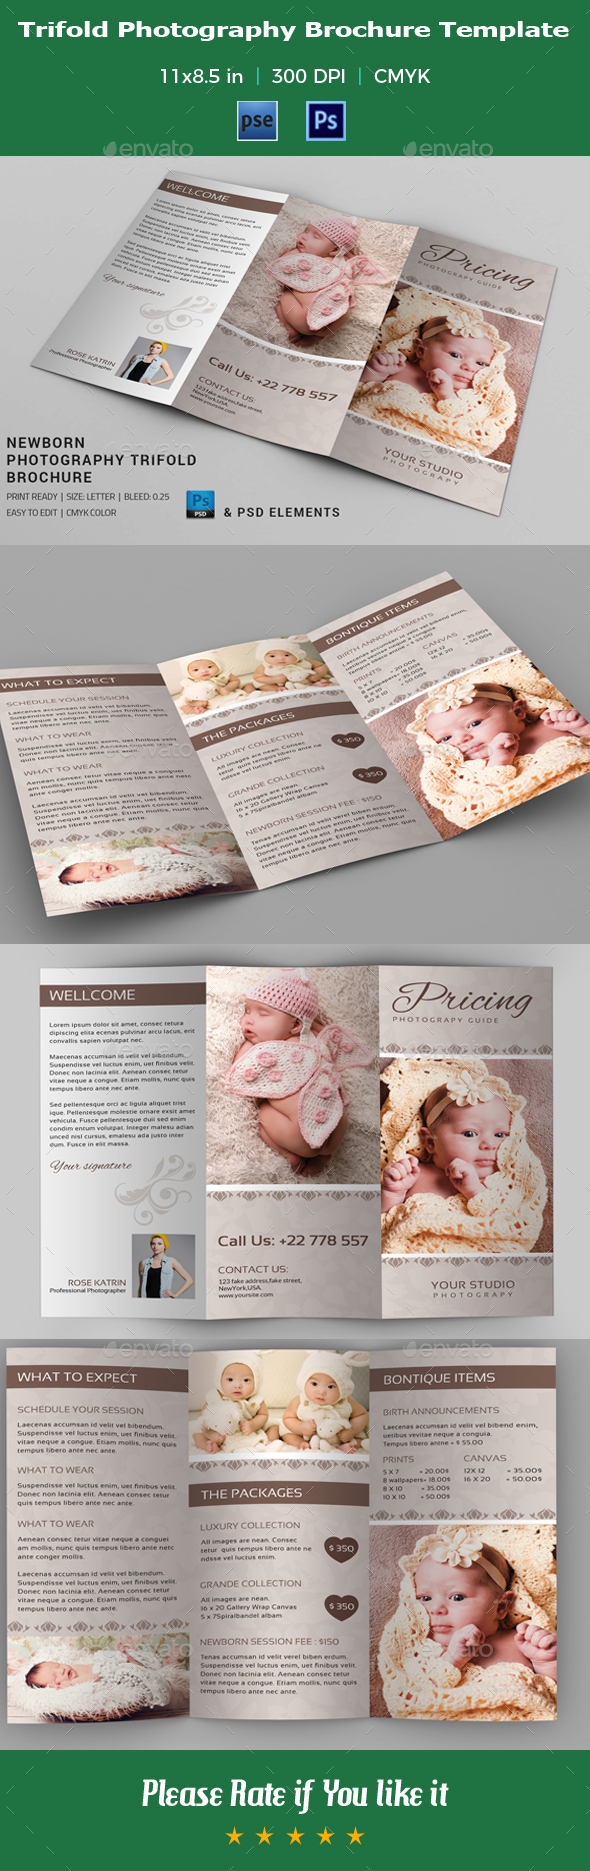 Photography Brochure Template V19 By Azgraphics Graphicriver